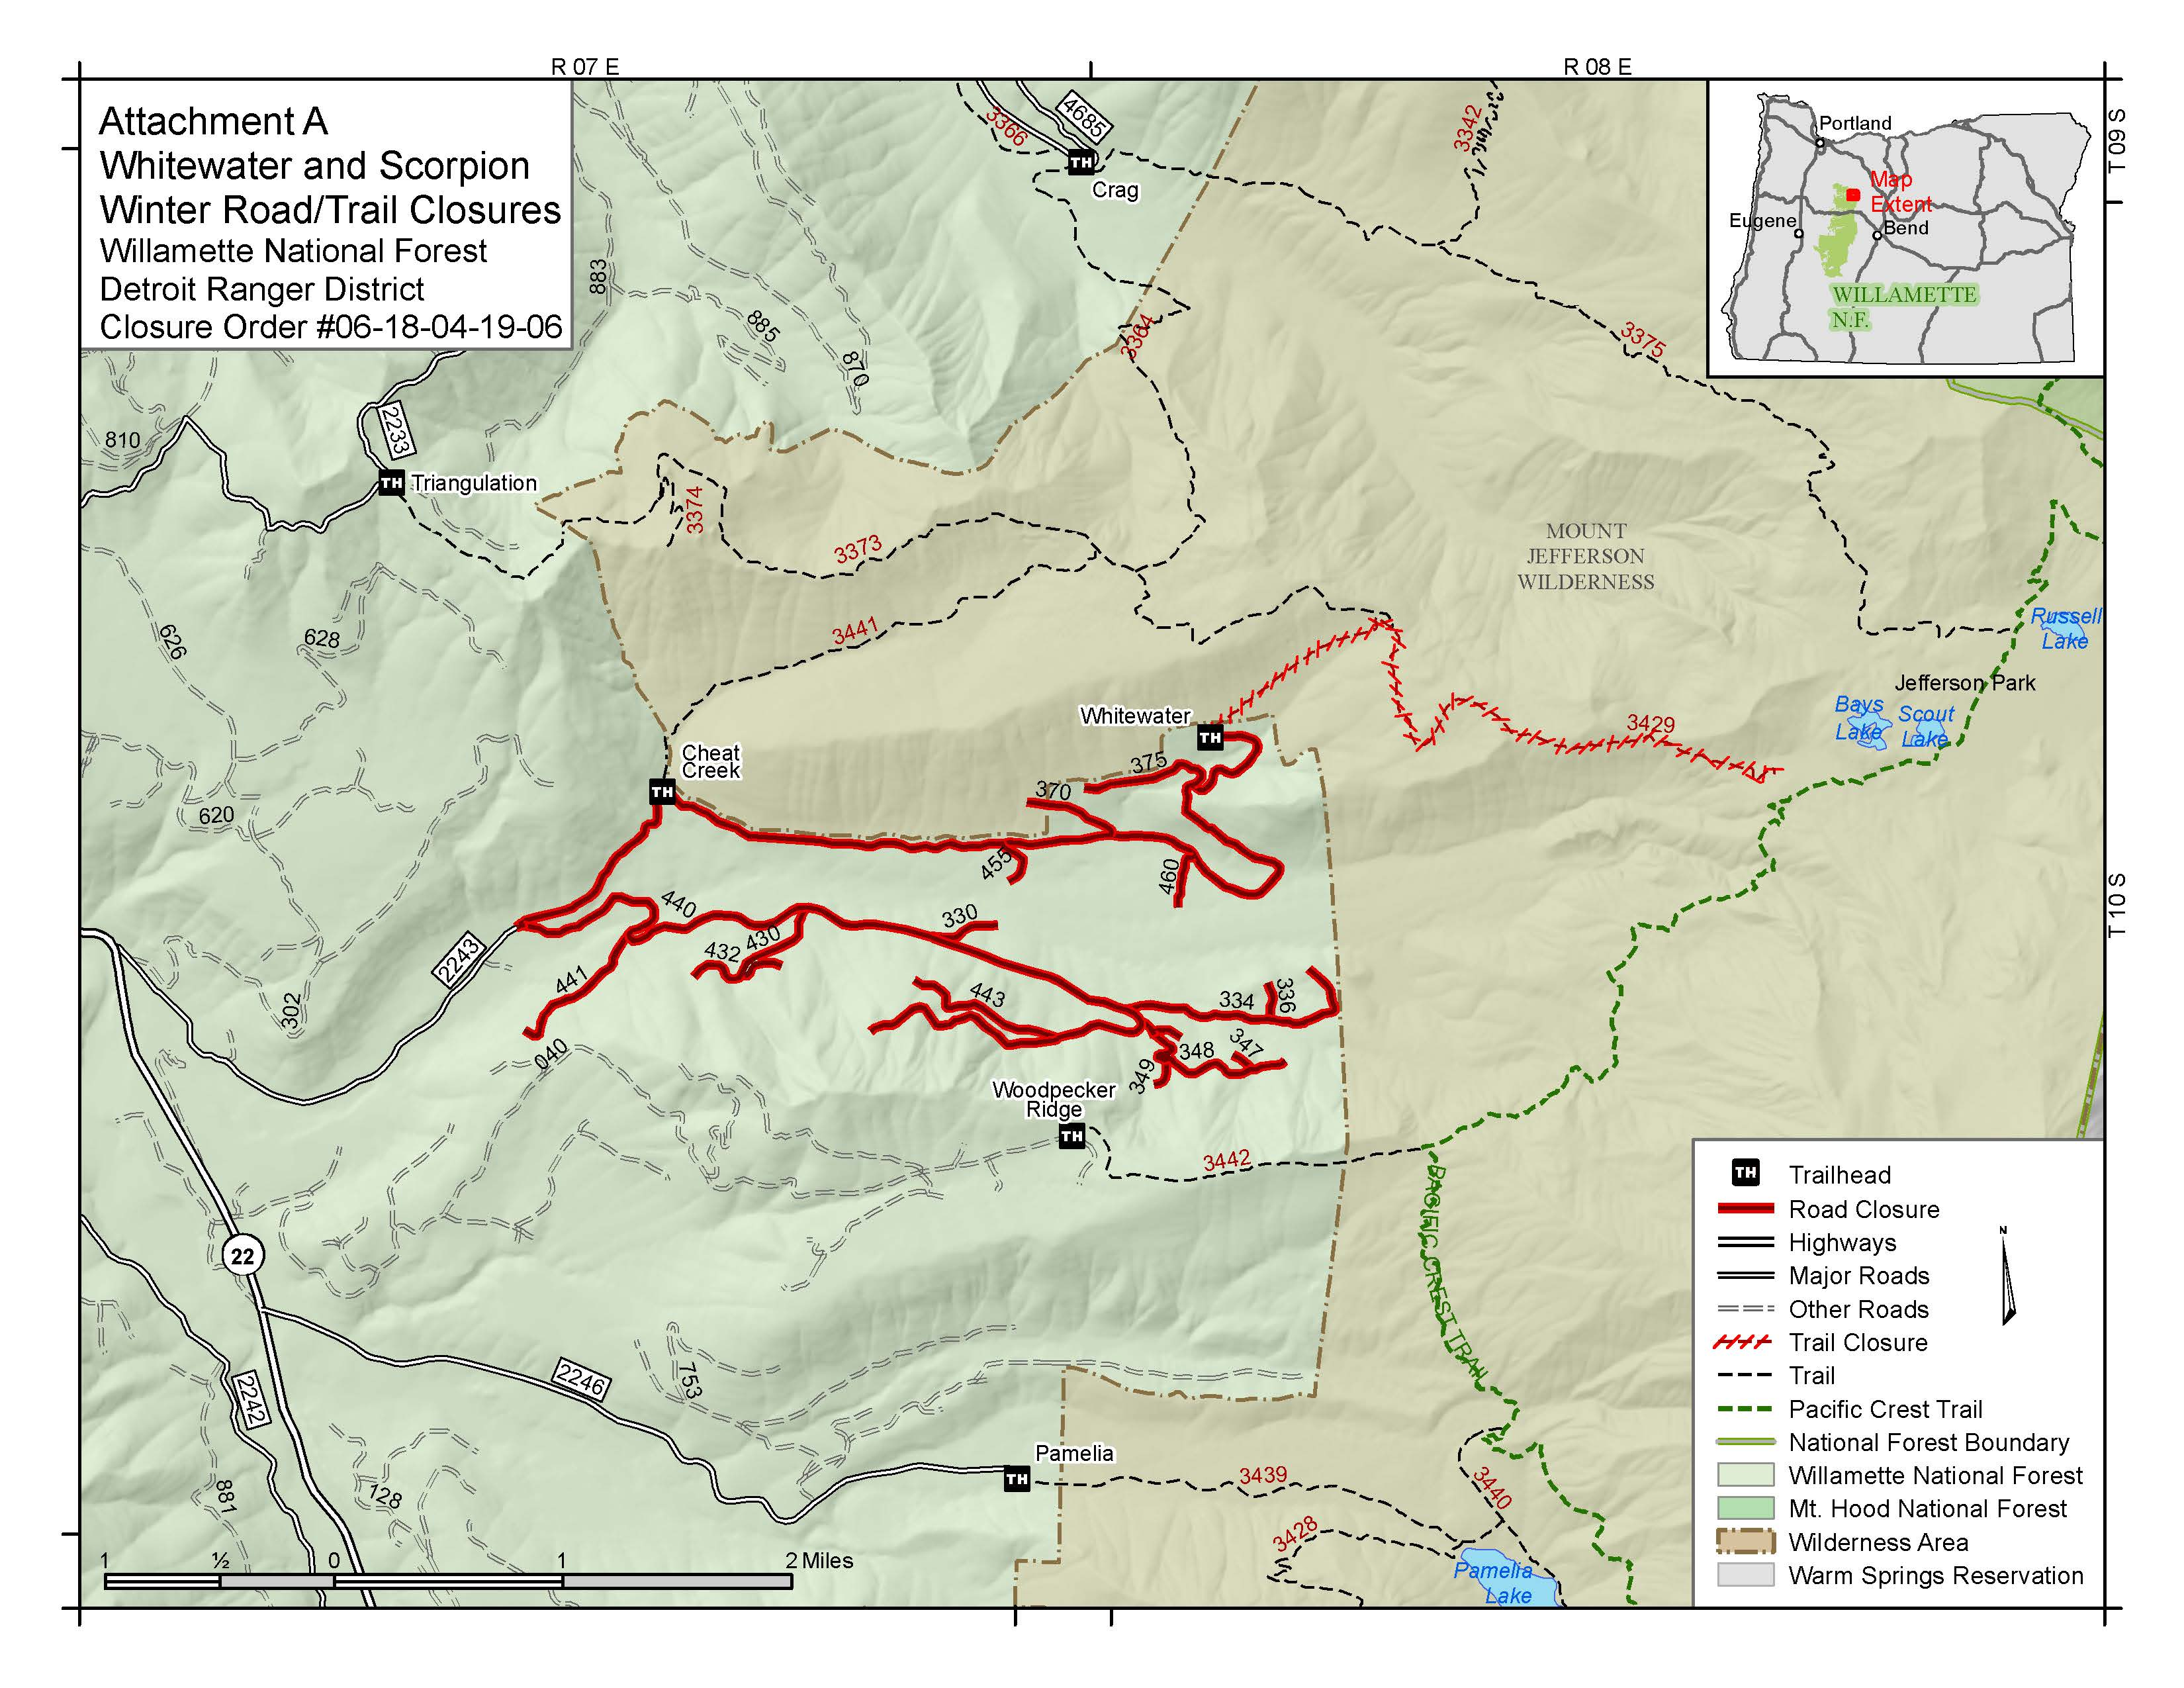 a link to a map showing closed roads and trails in the whitewater fire area